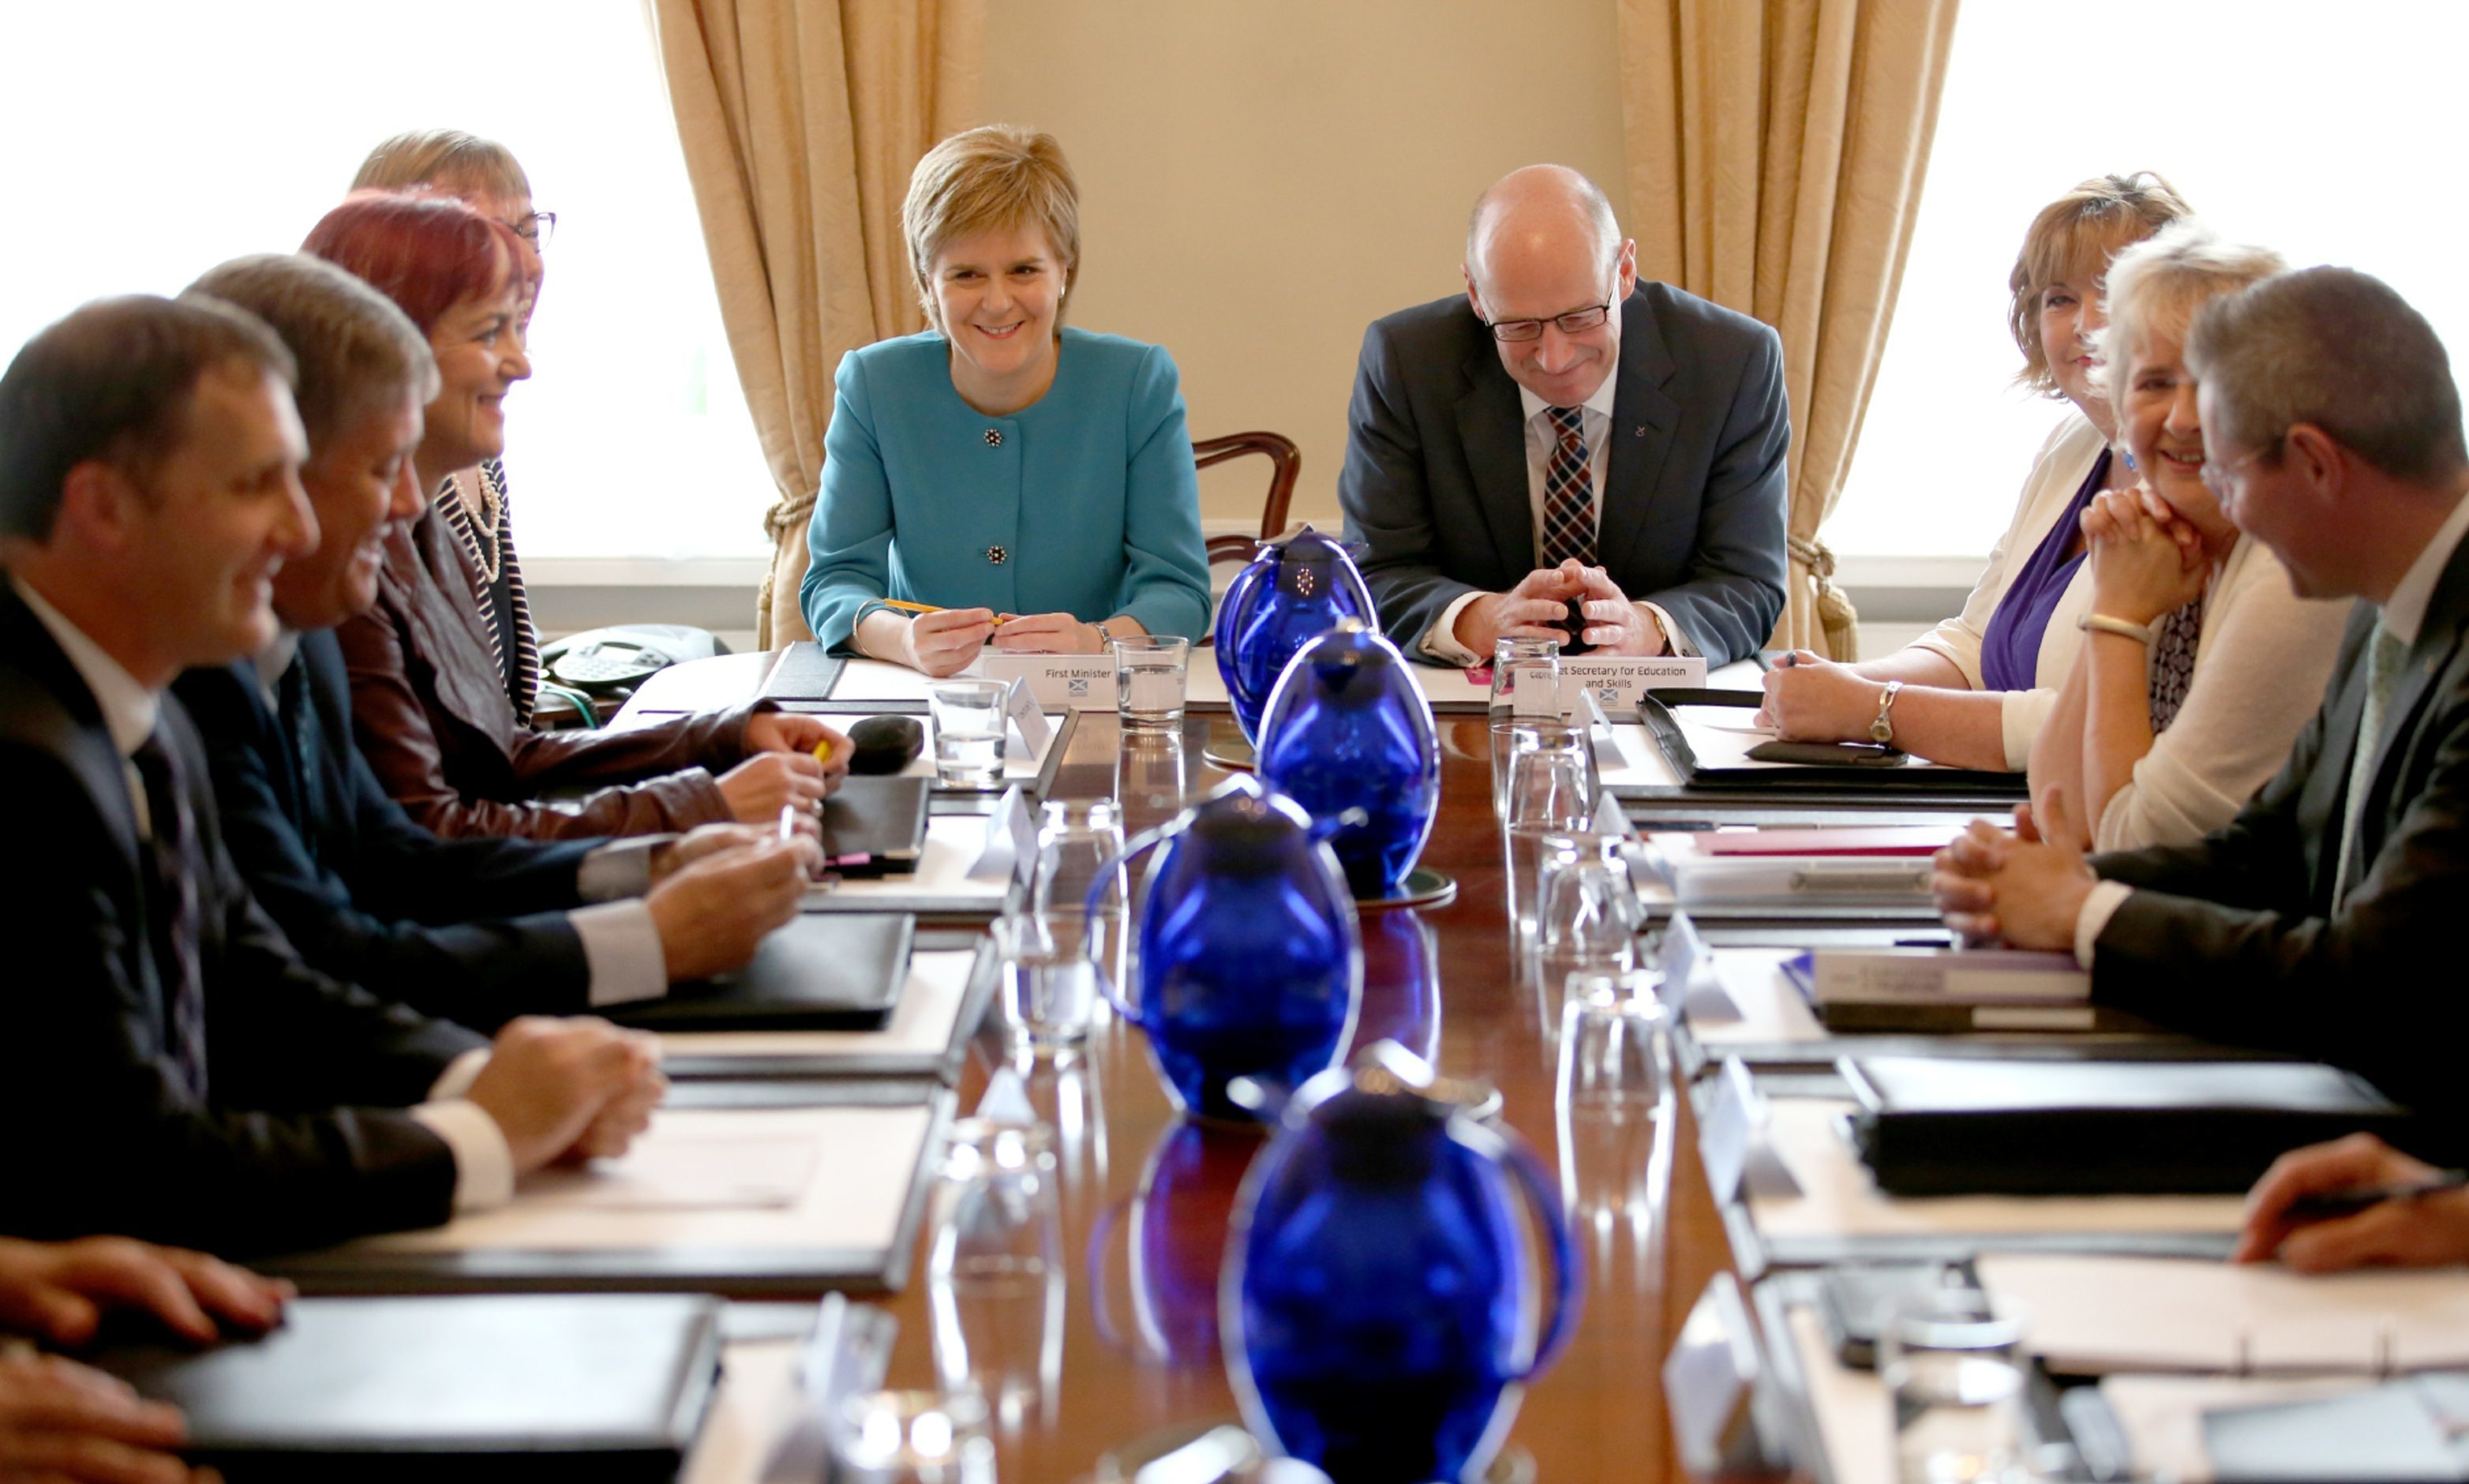 First Minister Nicola Sturgeon and Deputy First Minister John Swinney attend an emergency cabinet meeting at Bute House.